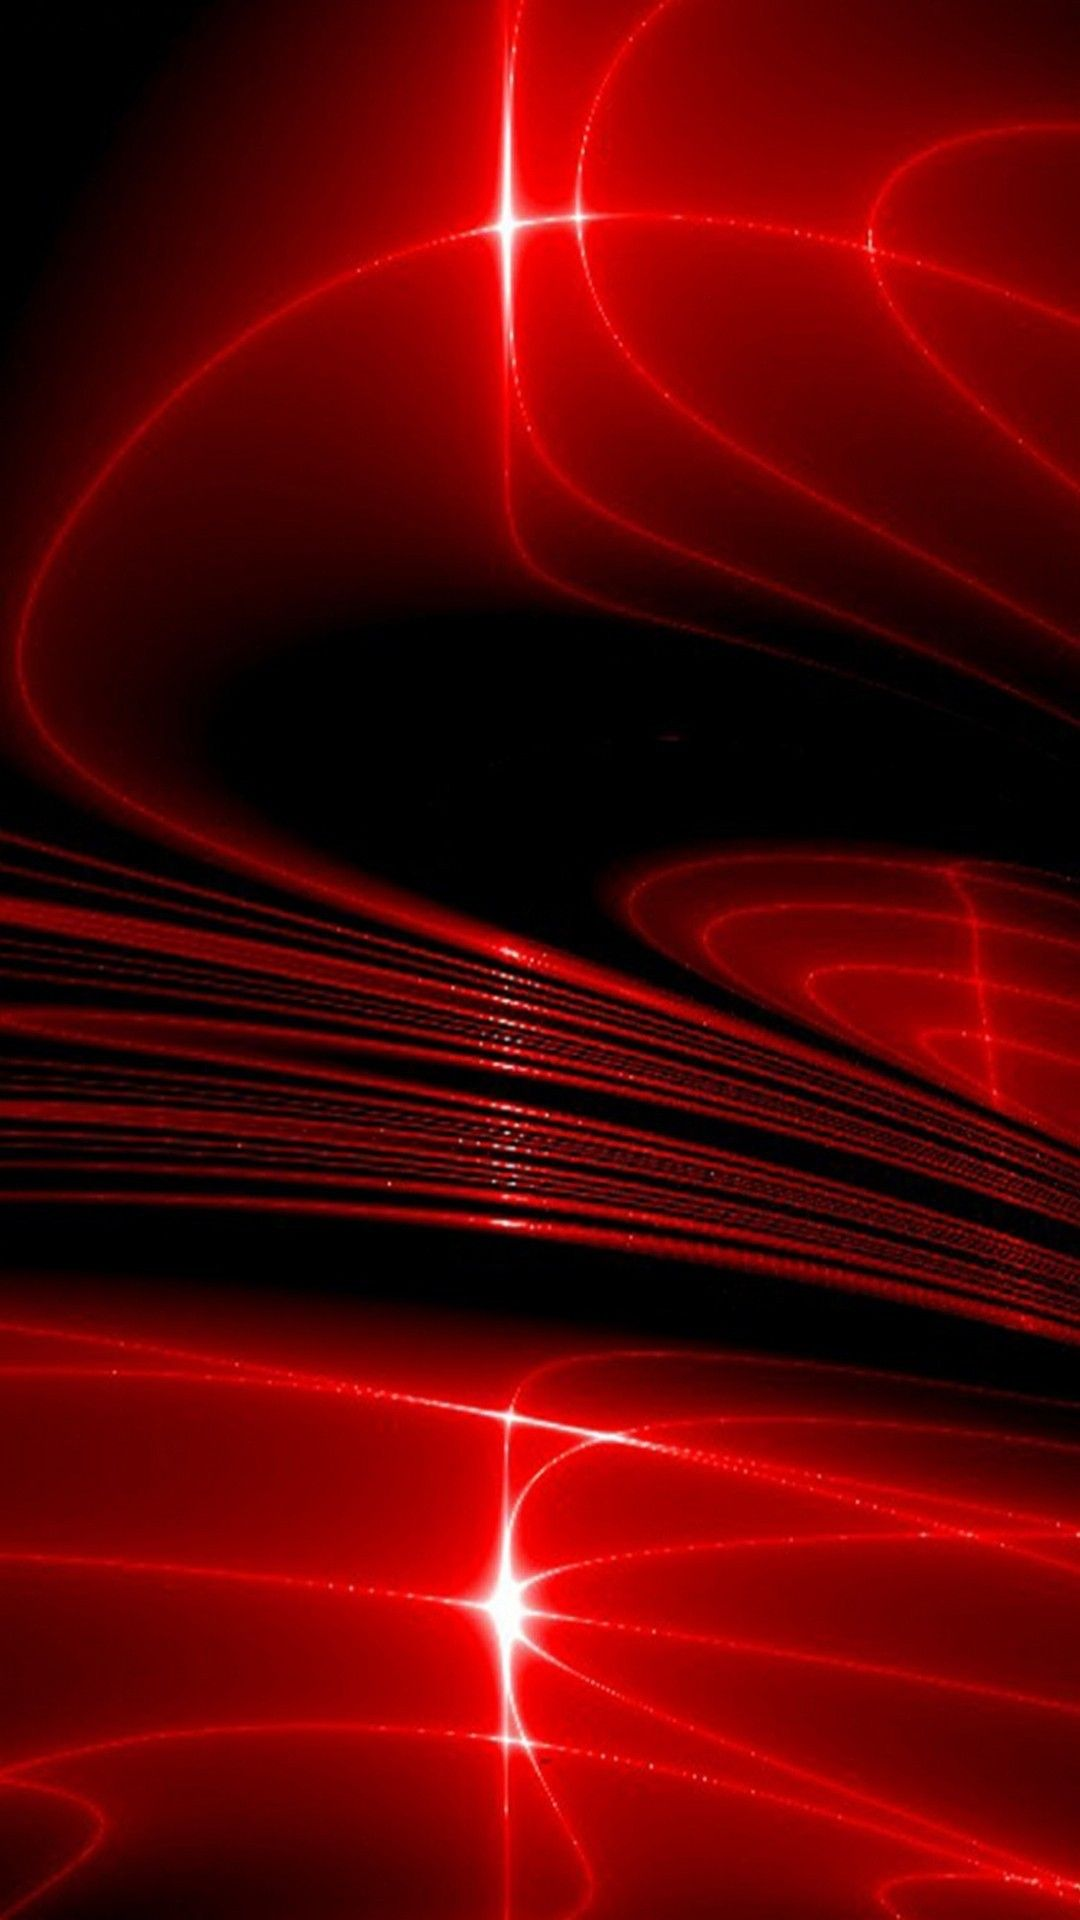 Cool Abstract Hd Wallpapers For Mobile Mobile Wallpaper Cellphone Wallpaper Mobile Wallpaper Android